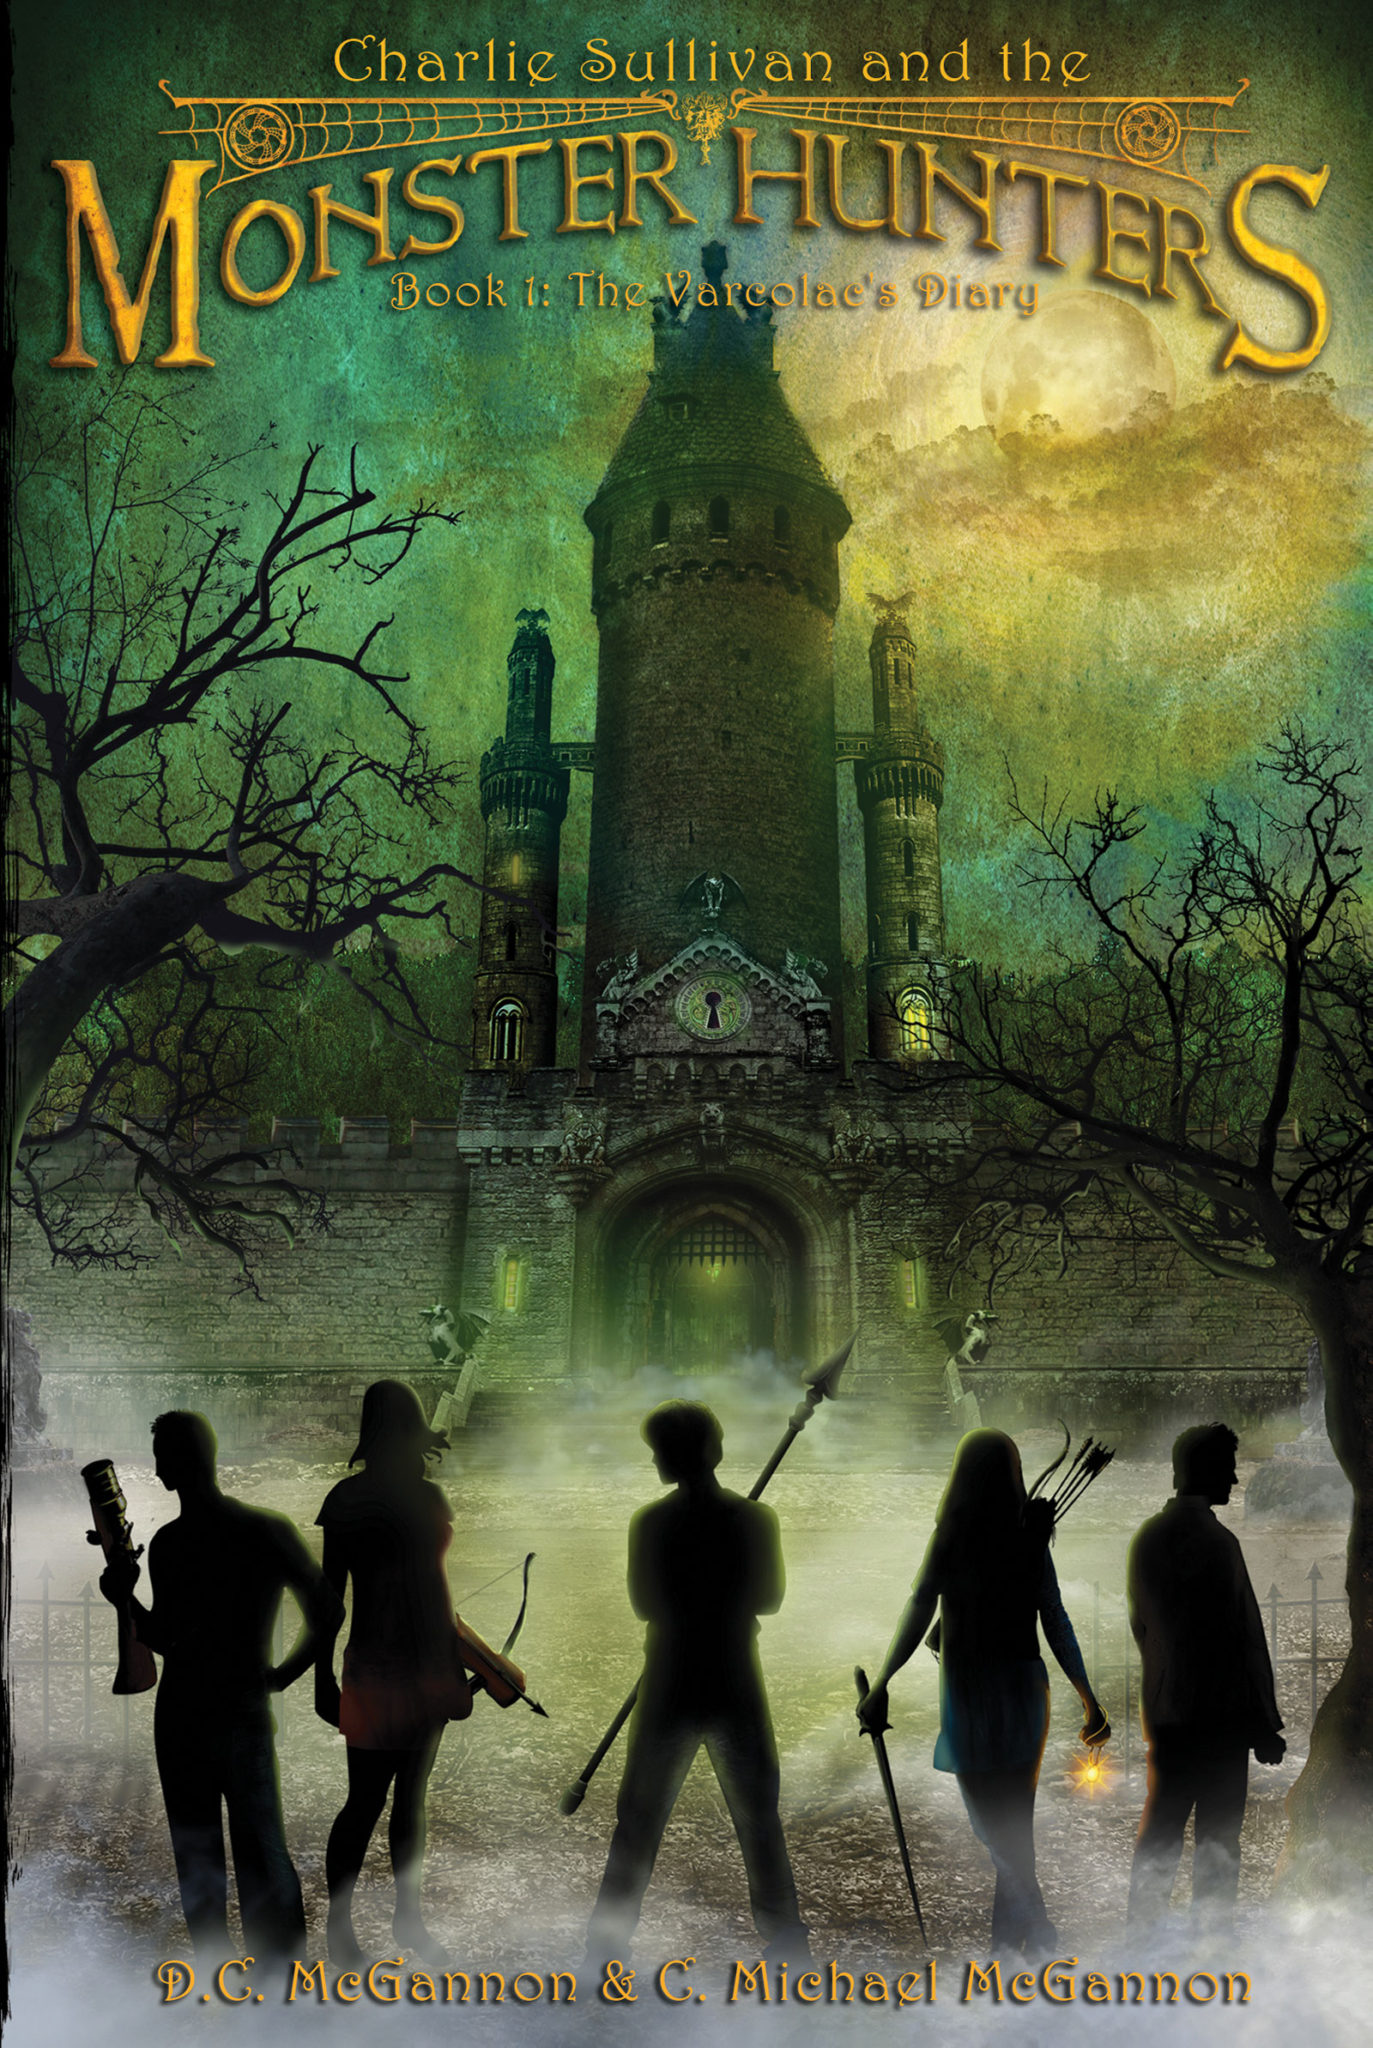 Charlie Sullivan and the Monster Hunters: The Varcolac's Diary (Book 1) by D.C. McGannon & C. Michael McGannon